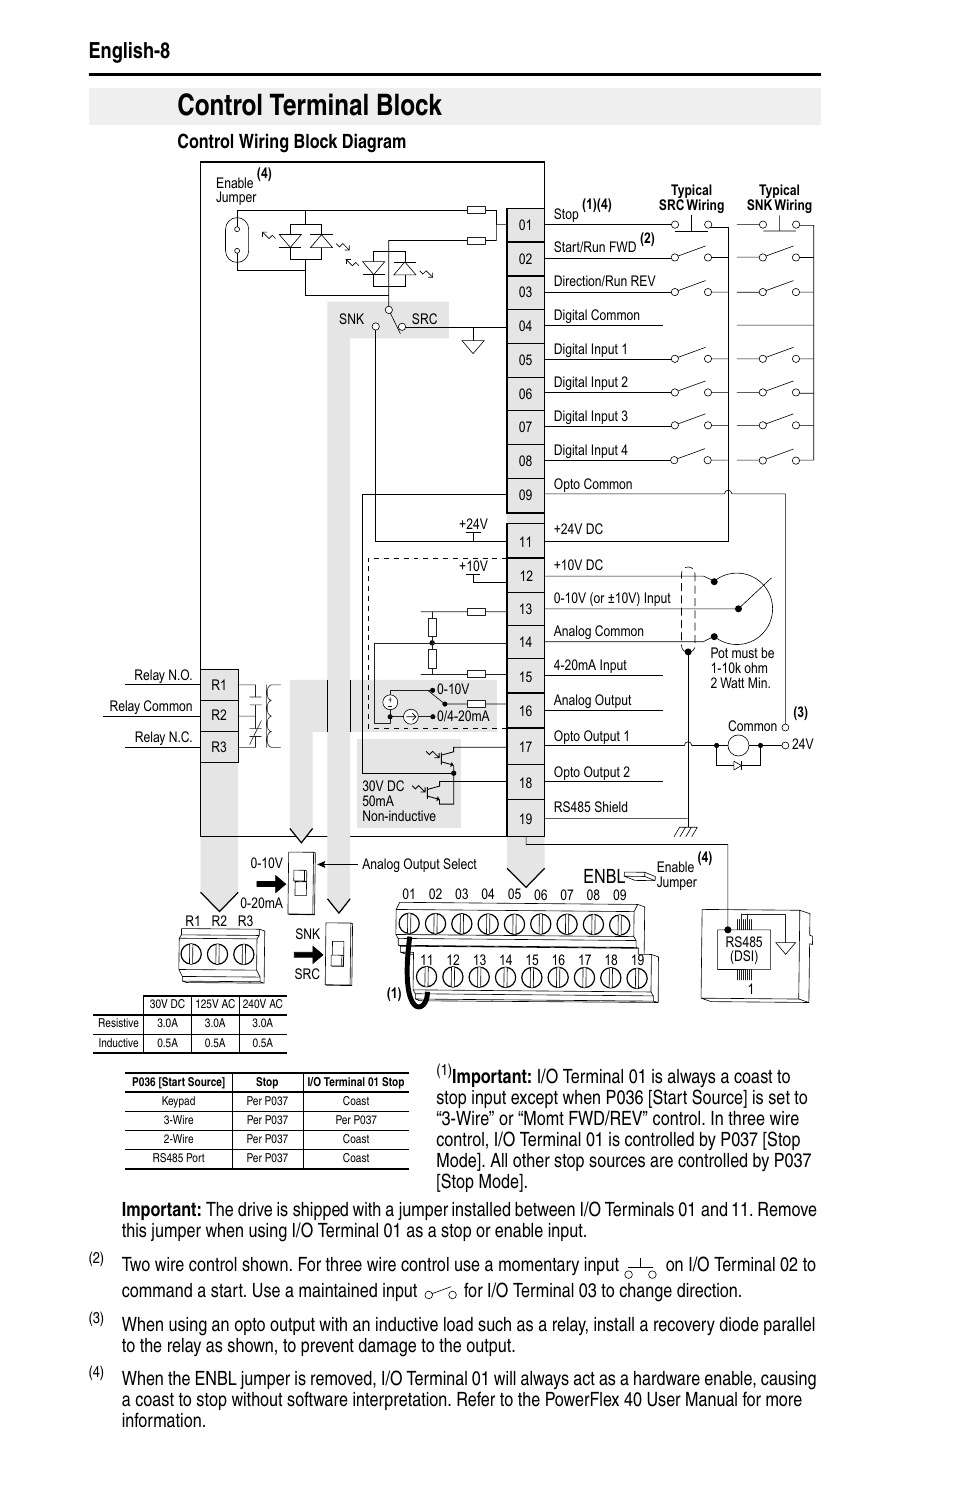 rockwell automation 22b powerflex 40 quick start frn 5xx 6xx page10 control terminal block, english 8, control wiring block diagram powerflex 40 wiring diagram at creativeand.co